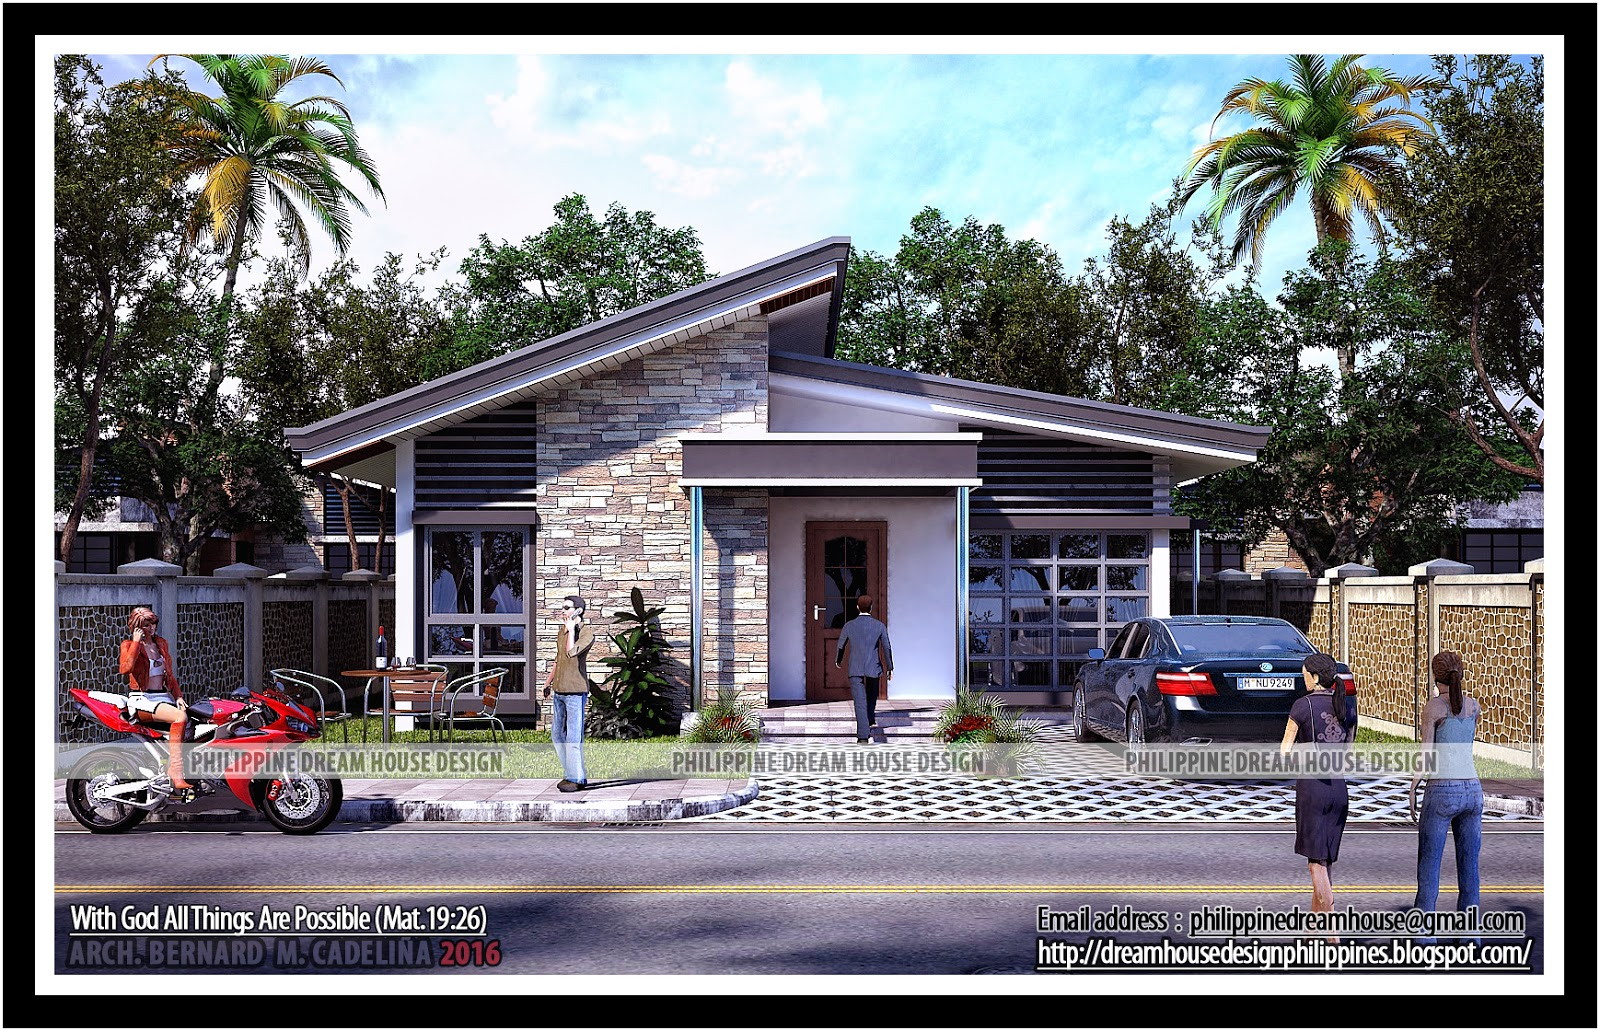 Philippine dream house design two bedroom bungalow house for Bungalow home designs plans